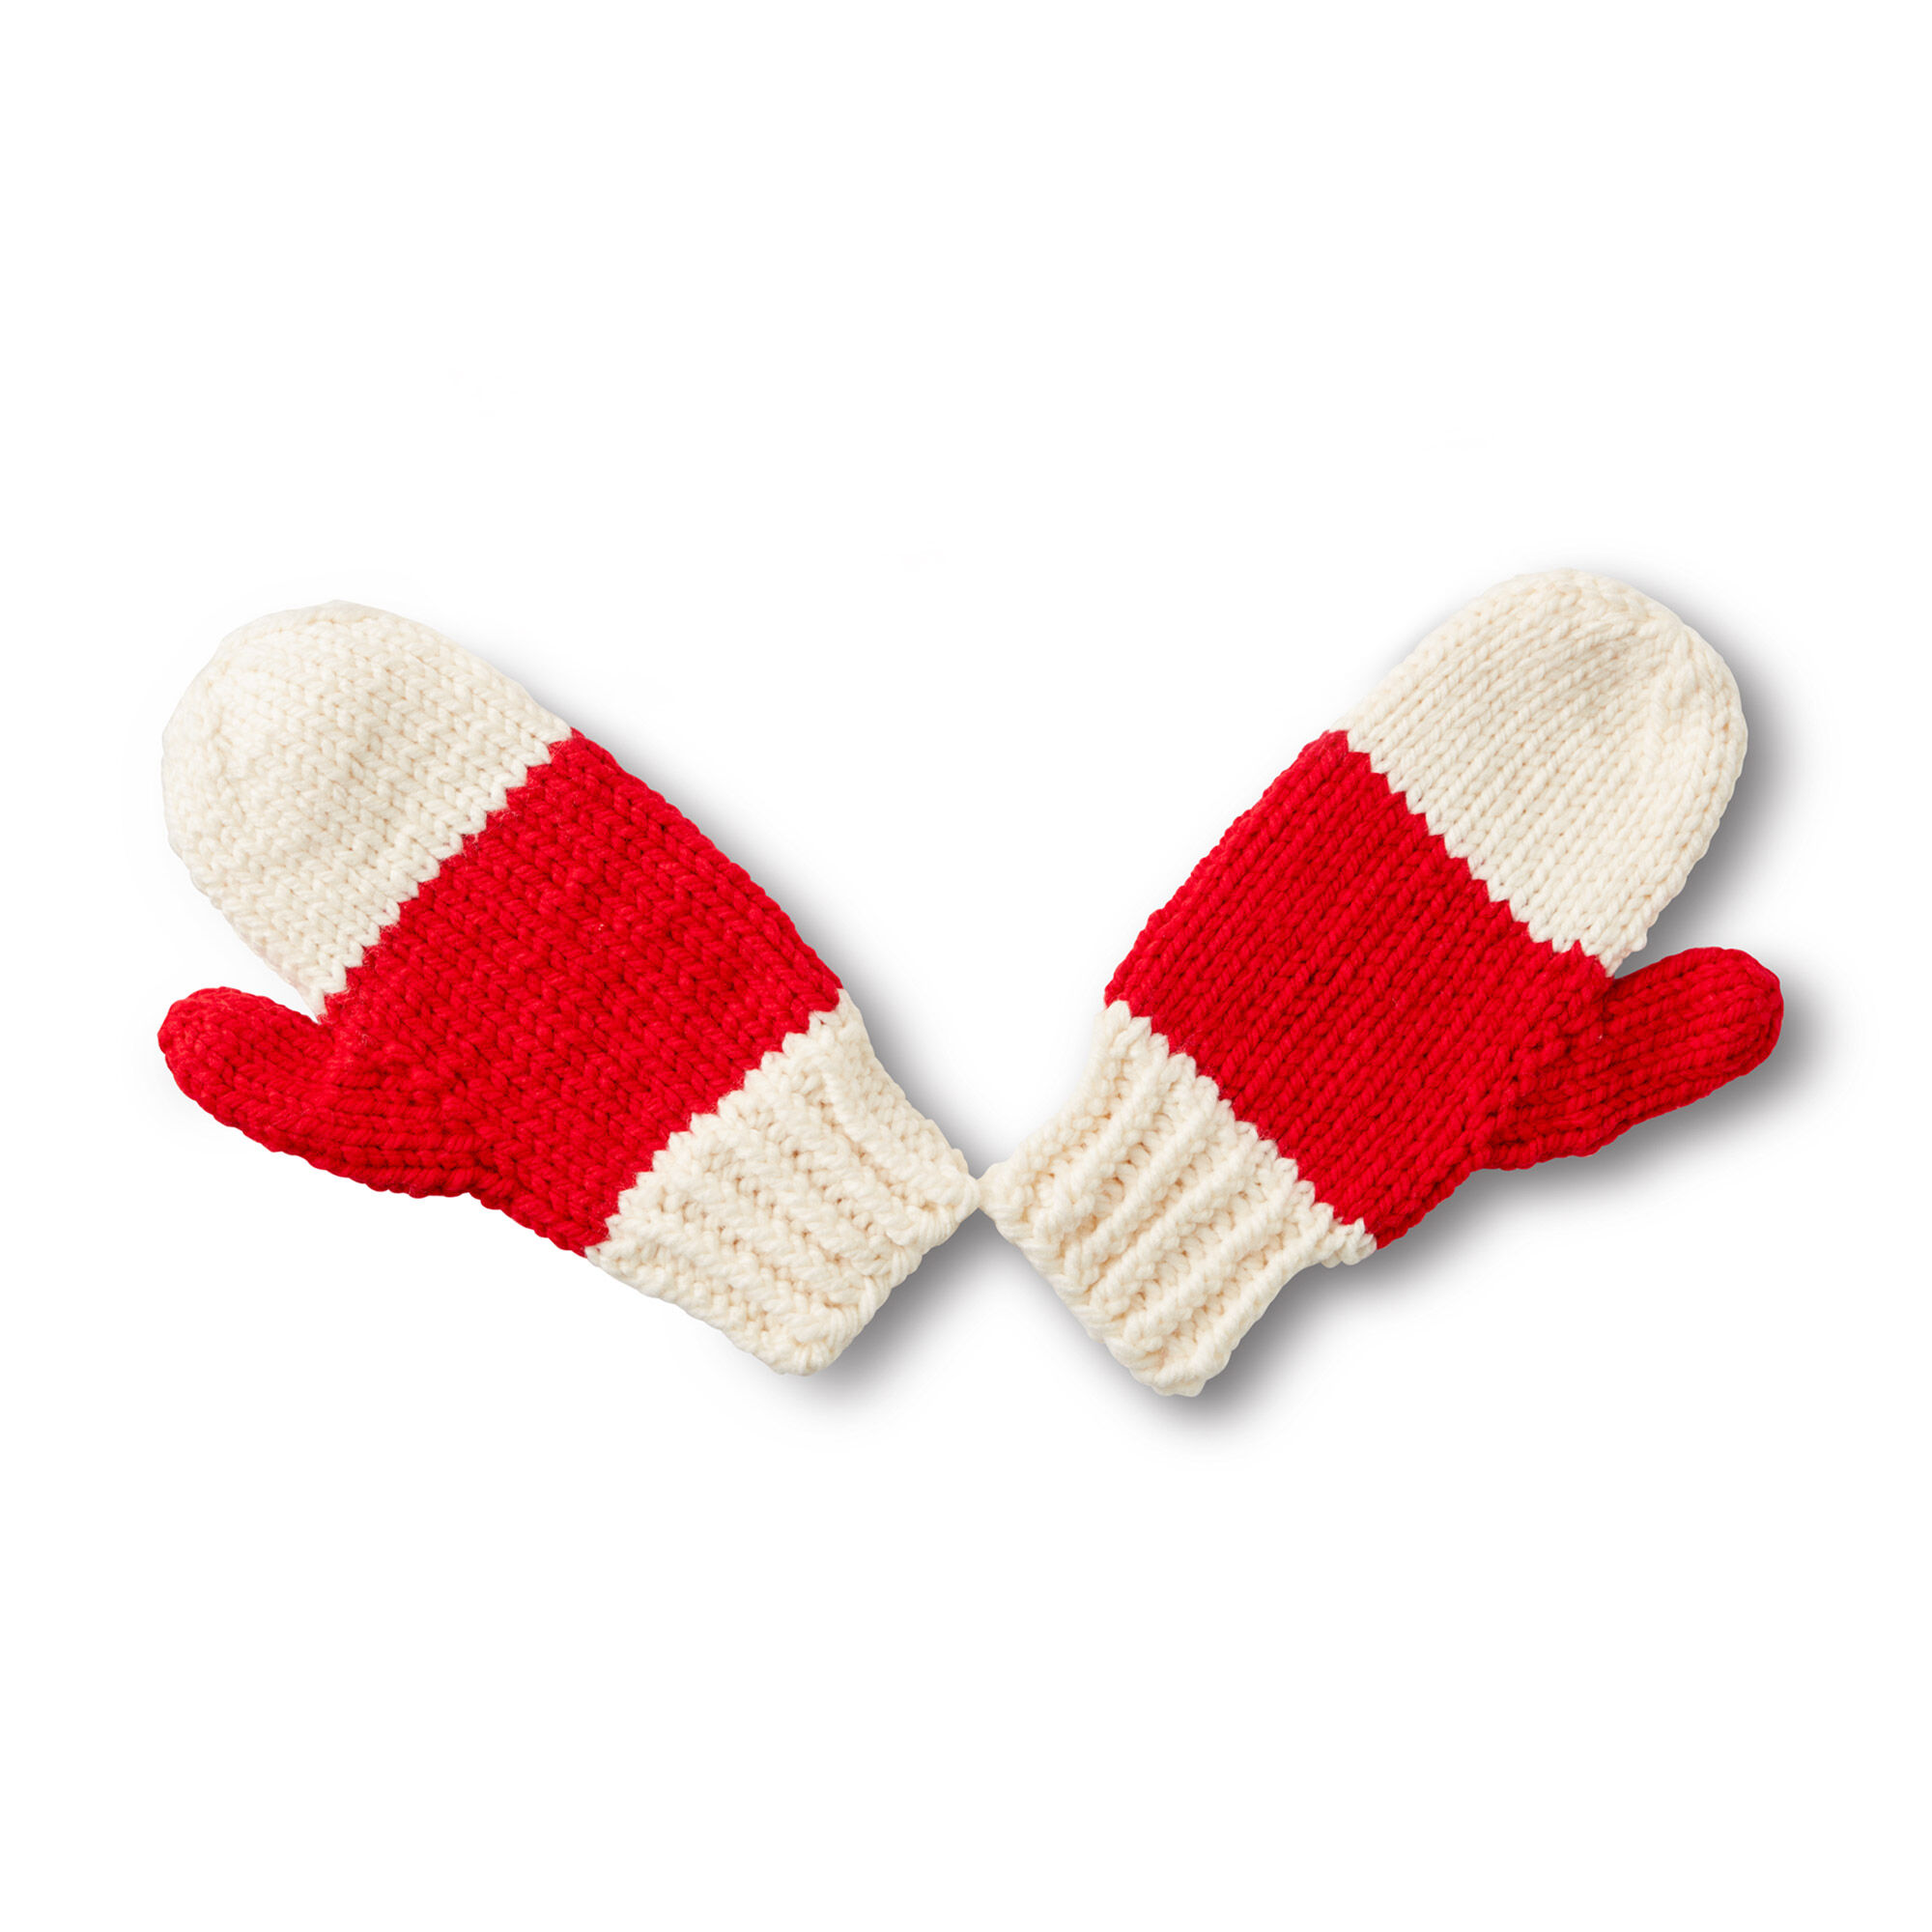 Bernat State your Nation Knit Mittens, 2 Color | Yarnspirations